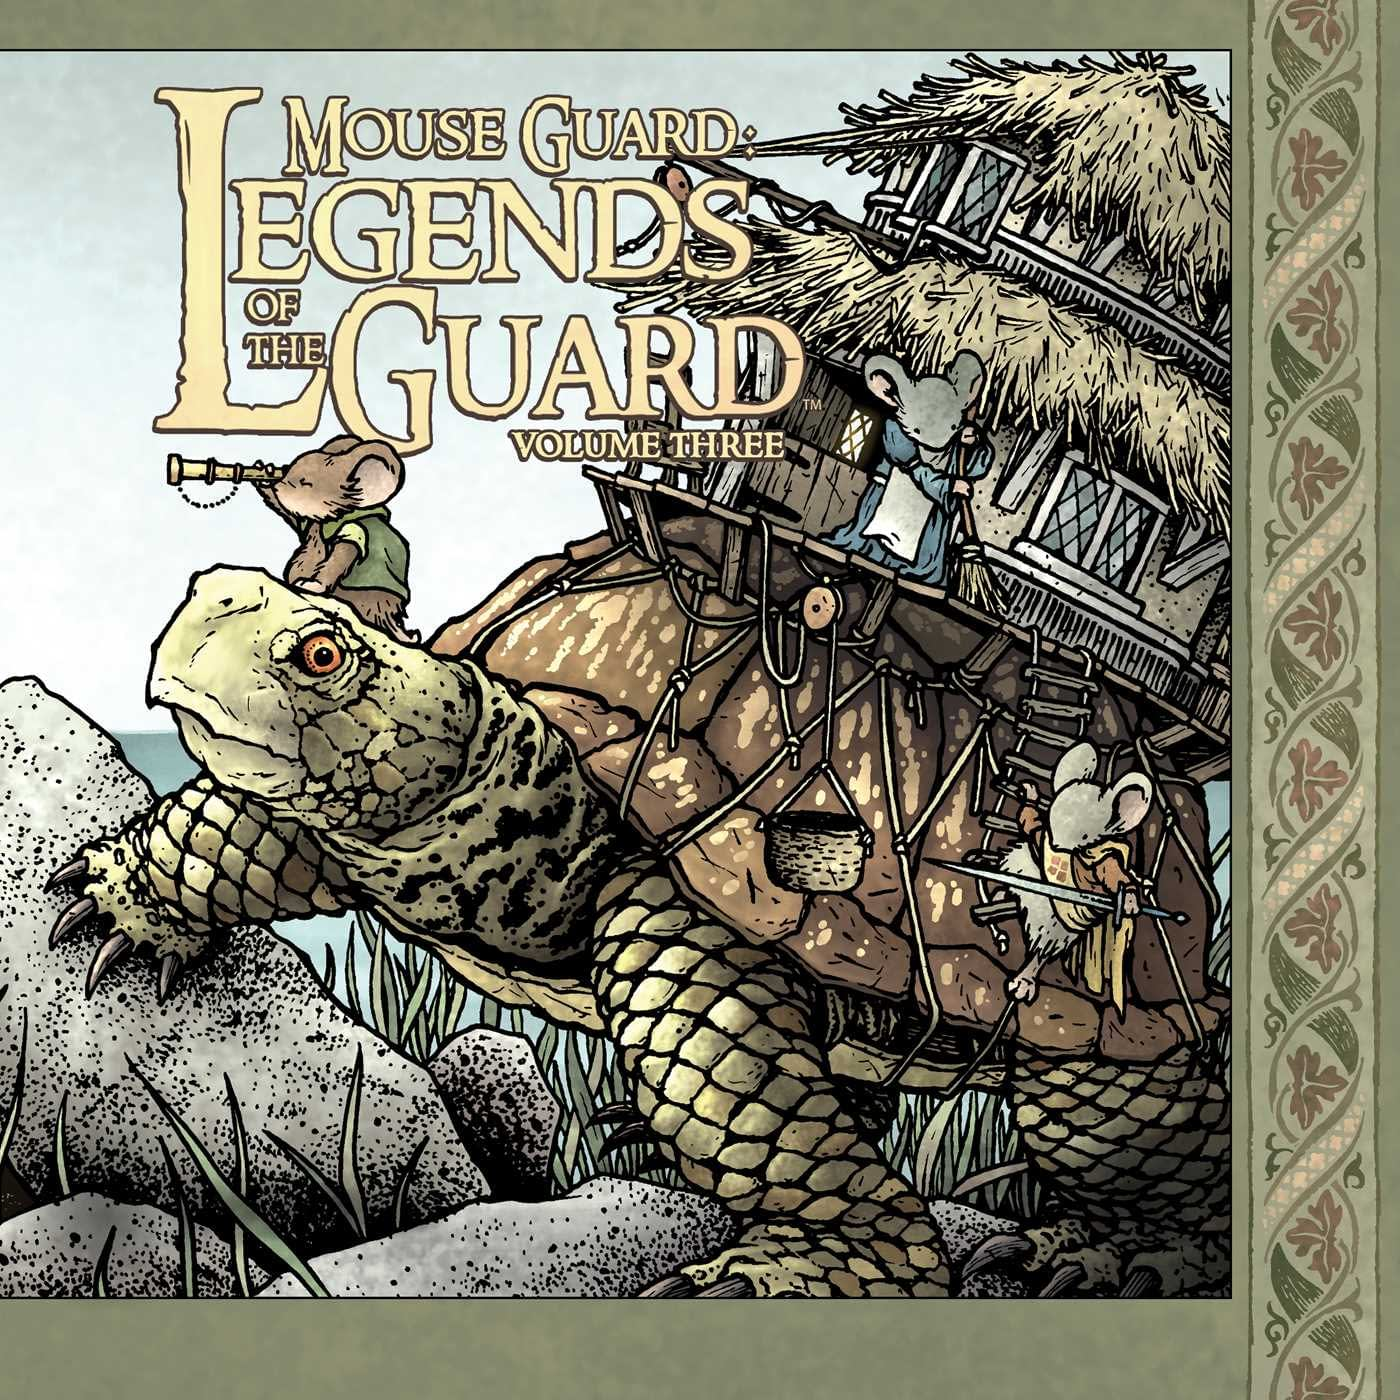 mouse-guard-legends-of-the-guard-volume-3-9781608867677_hr